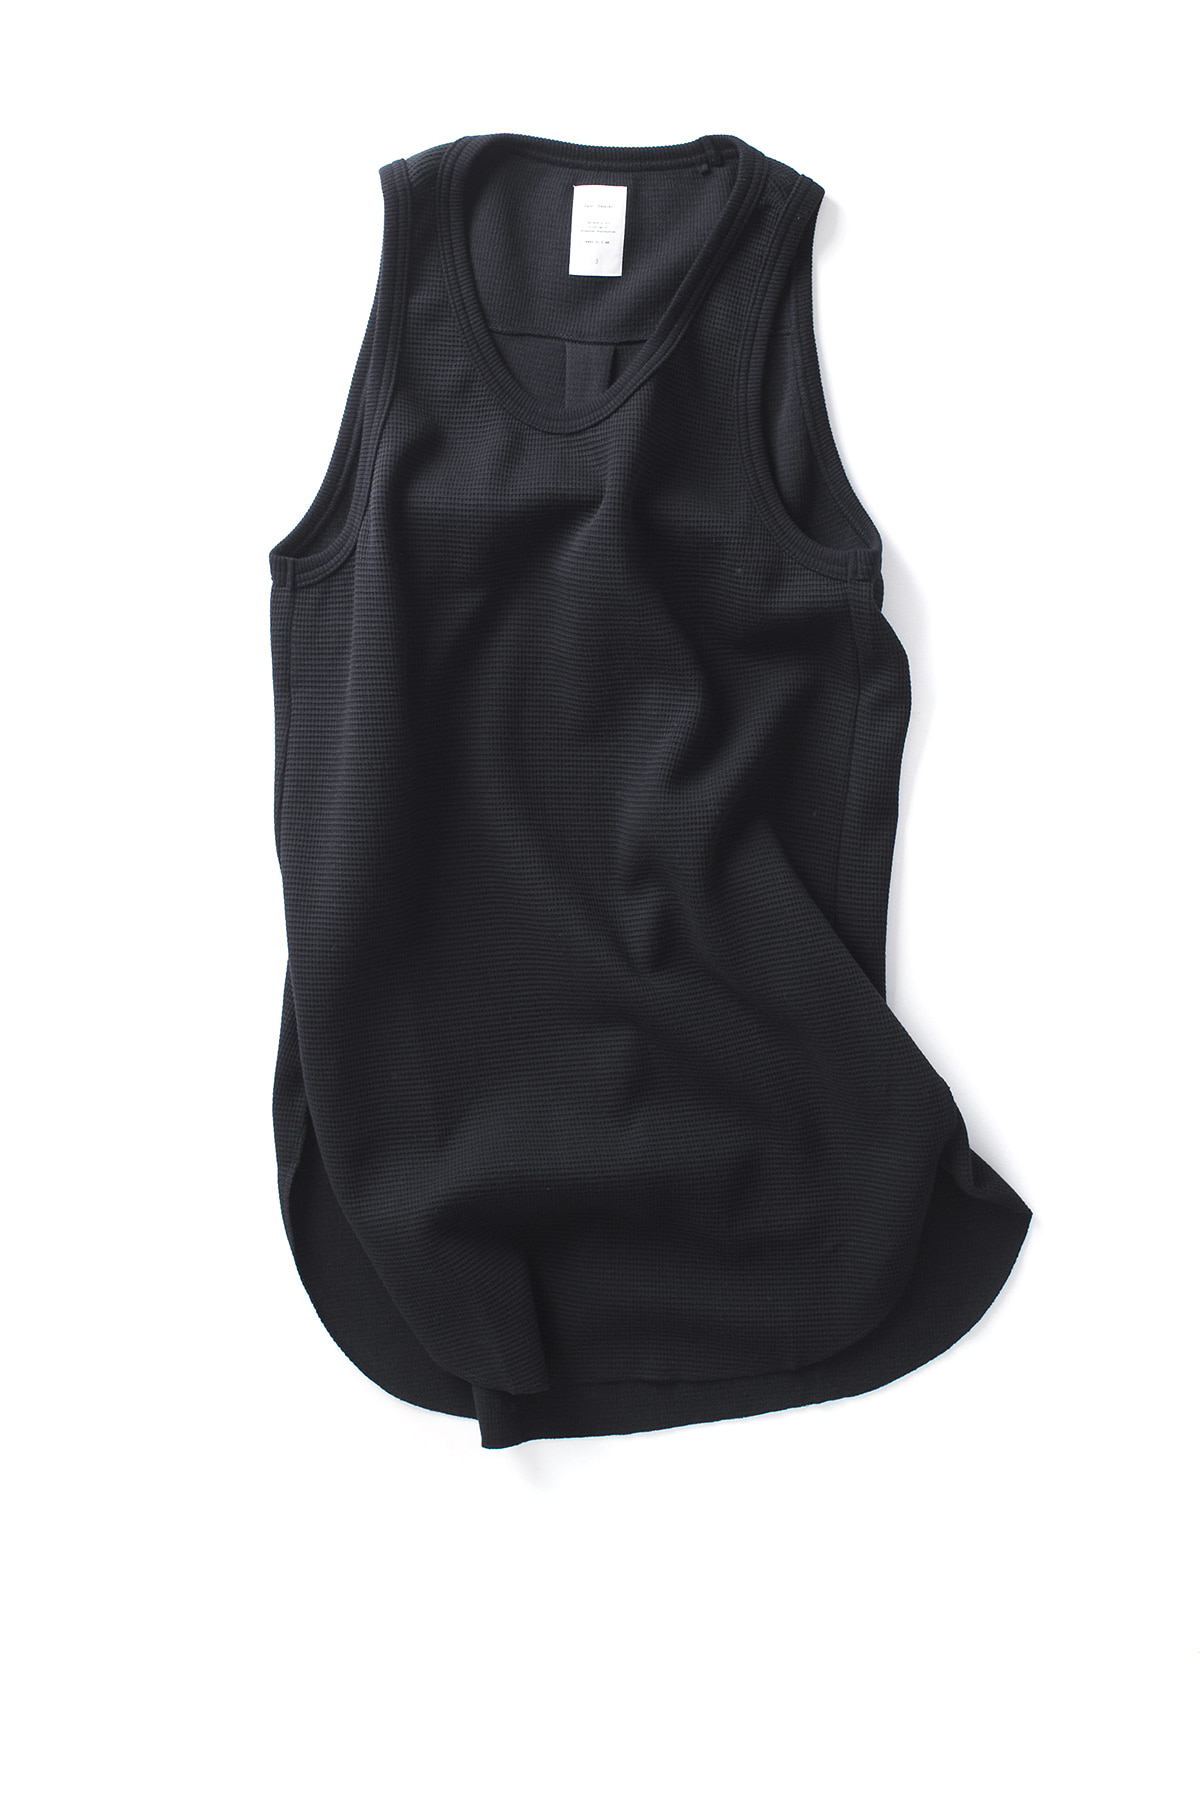 Name : Waffle Thermal Tank Top (Black)